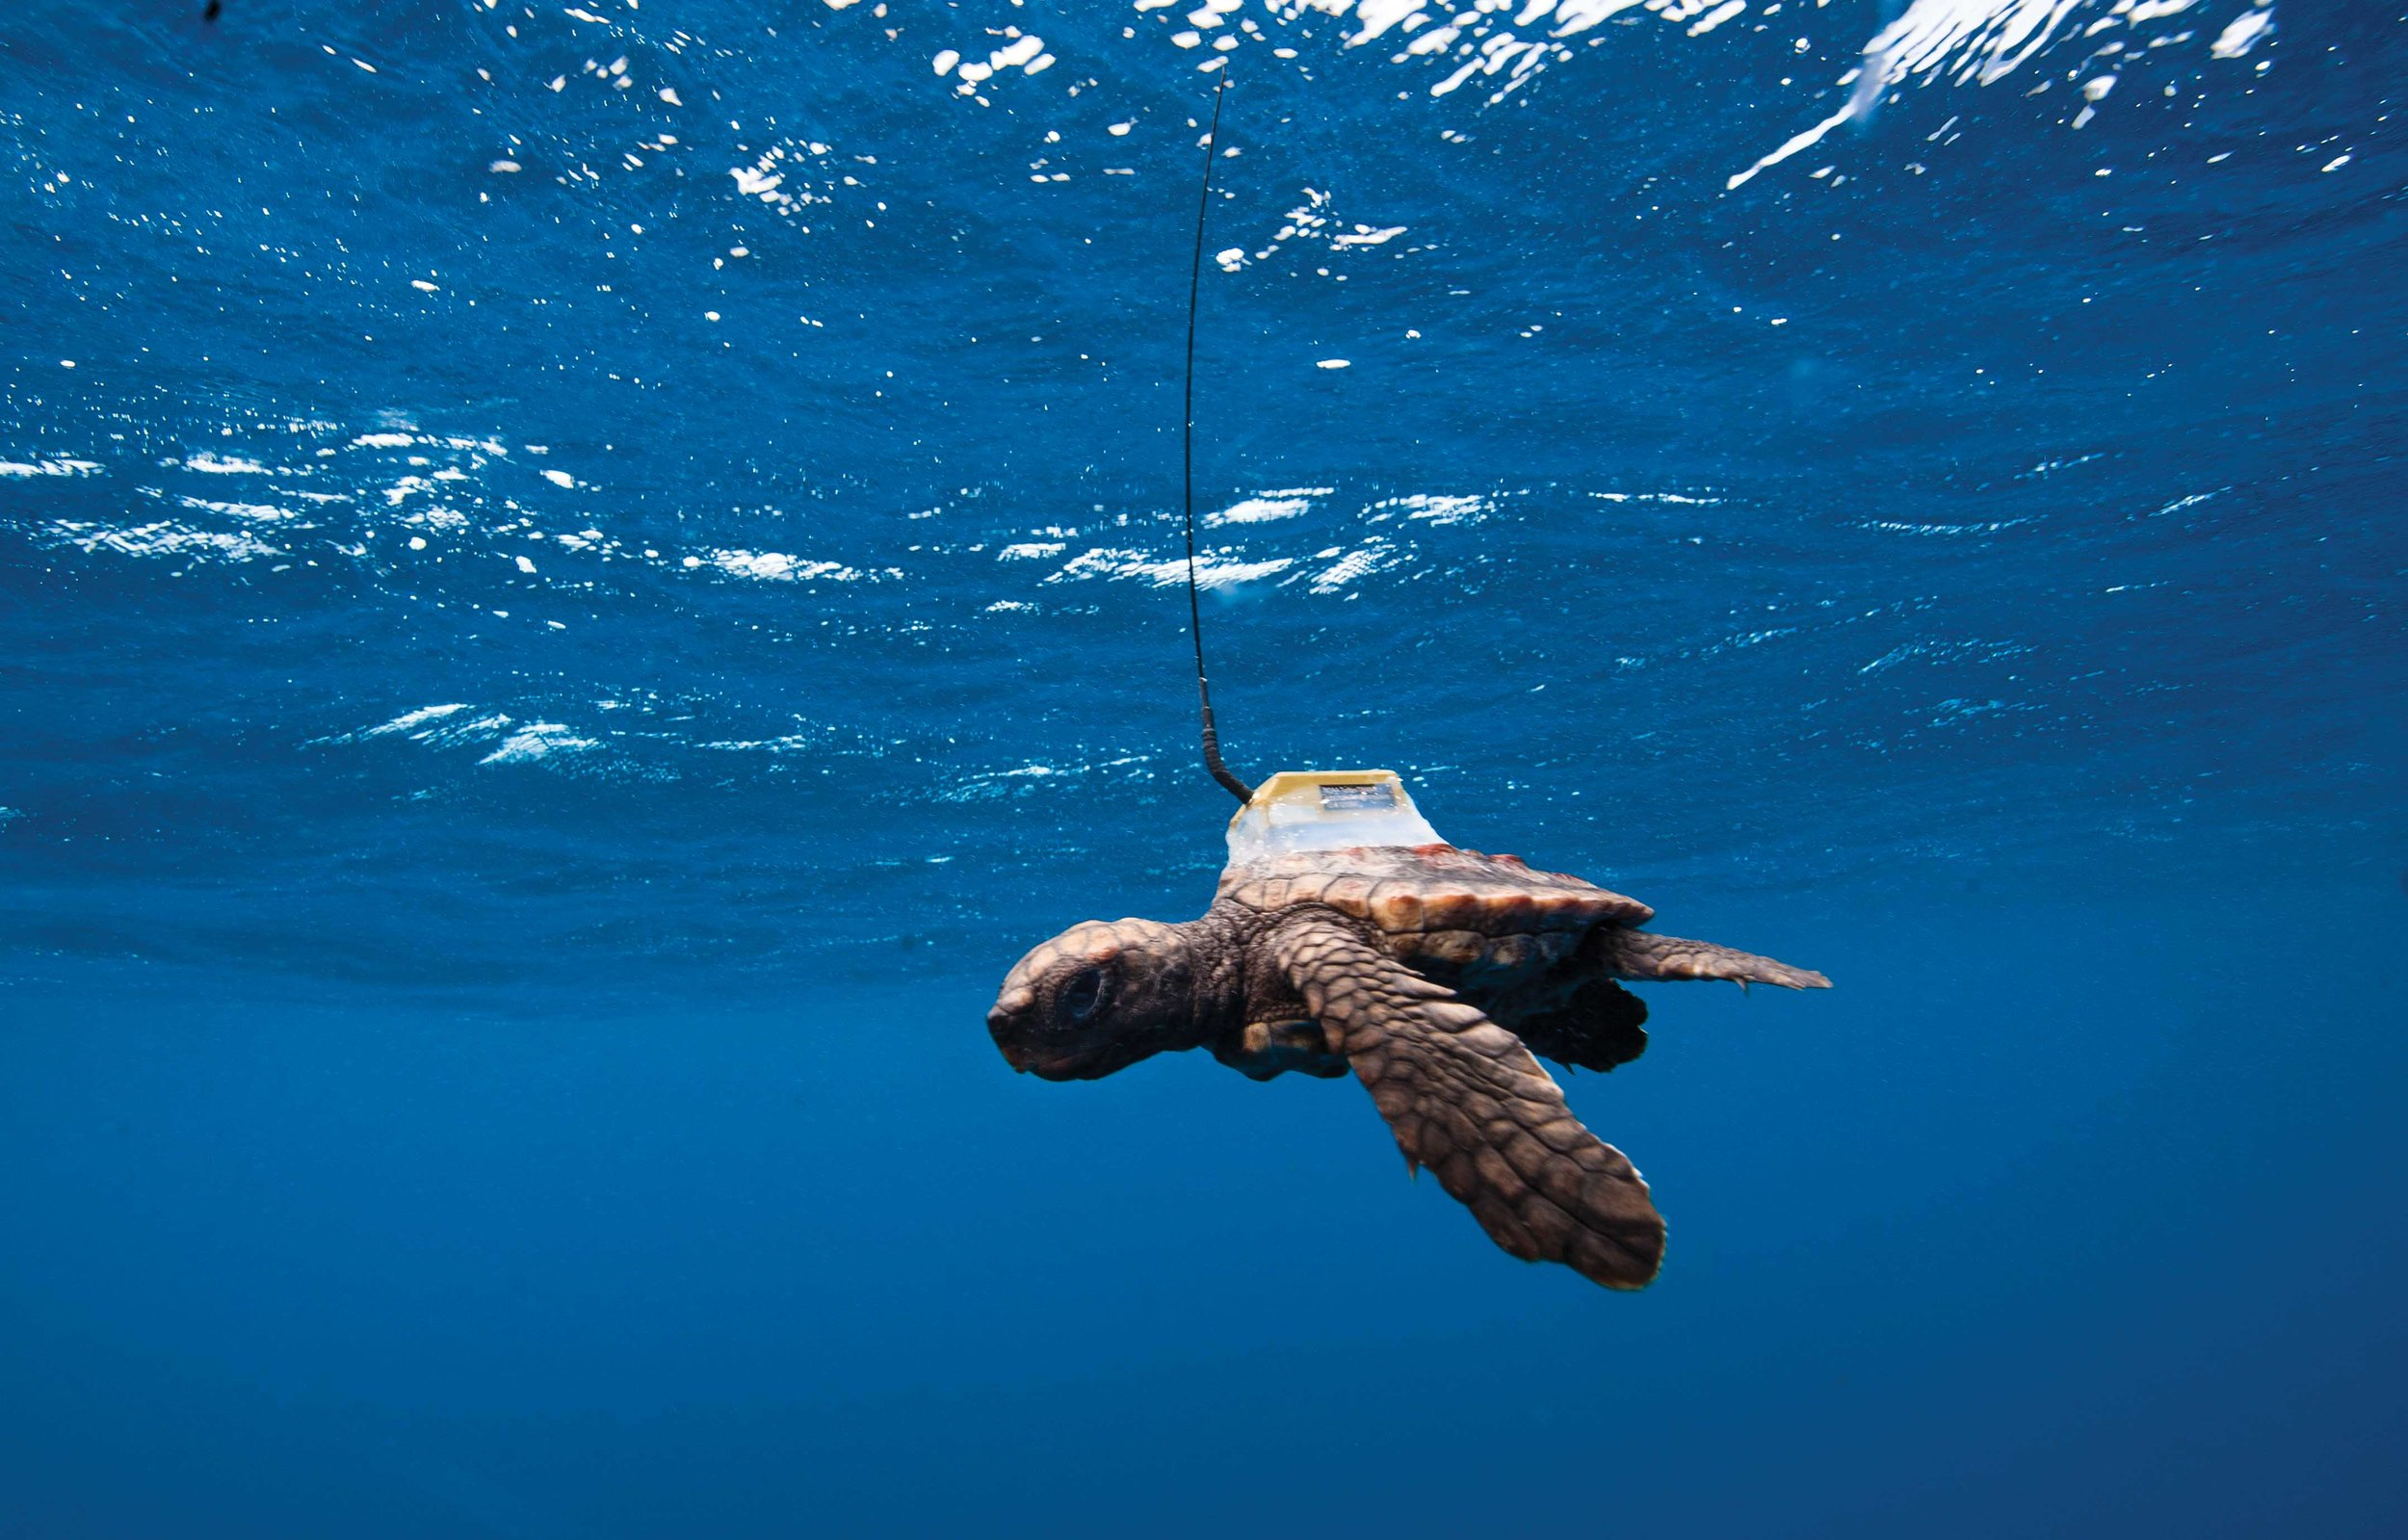 A juvenile loggerhead wearing a satellite transmitter swims near Praia do Forte, Brazil. Newer, smaller satellite transmitters like this one are making it possible to study the movements of juvenile turtles, and these novel data will improve models of turtle distributions at sea. © Projeto TAMAR Image Bank